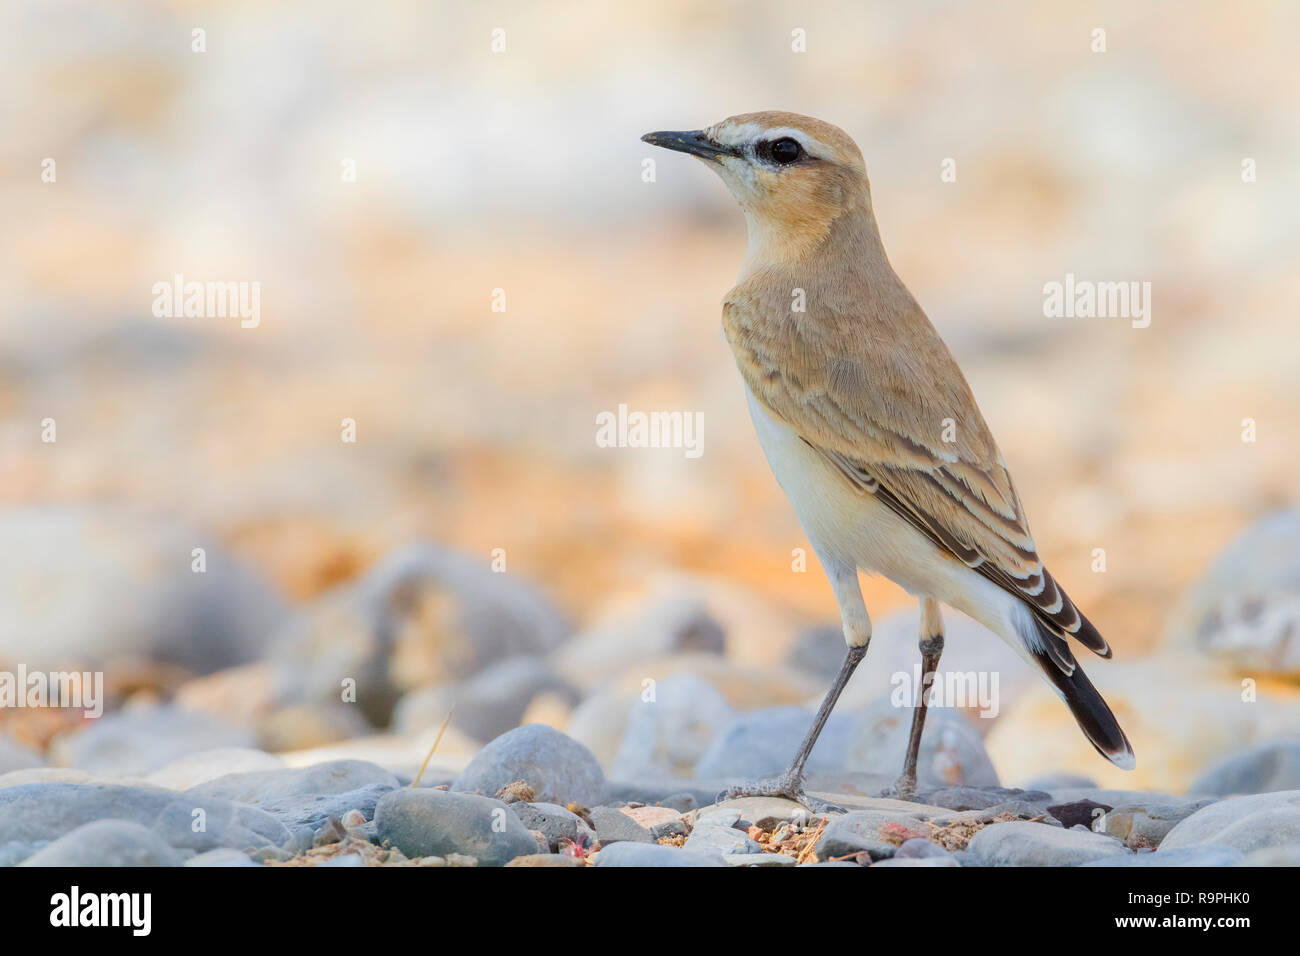 Isabelline Wheatear (Oenanthe isabellina), adult standing on the groundin Oman - Stock Image